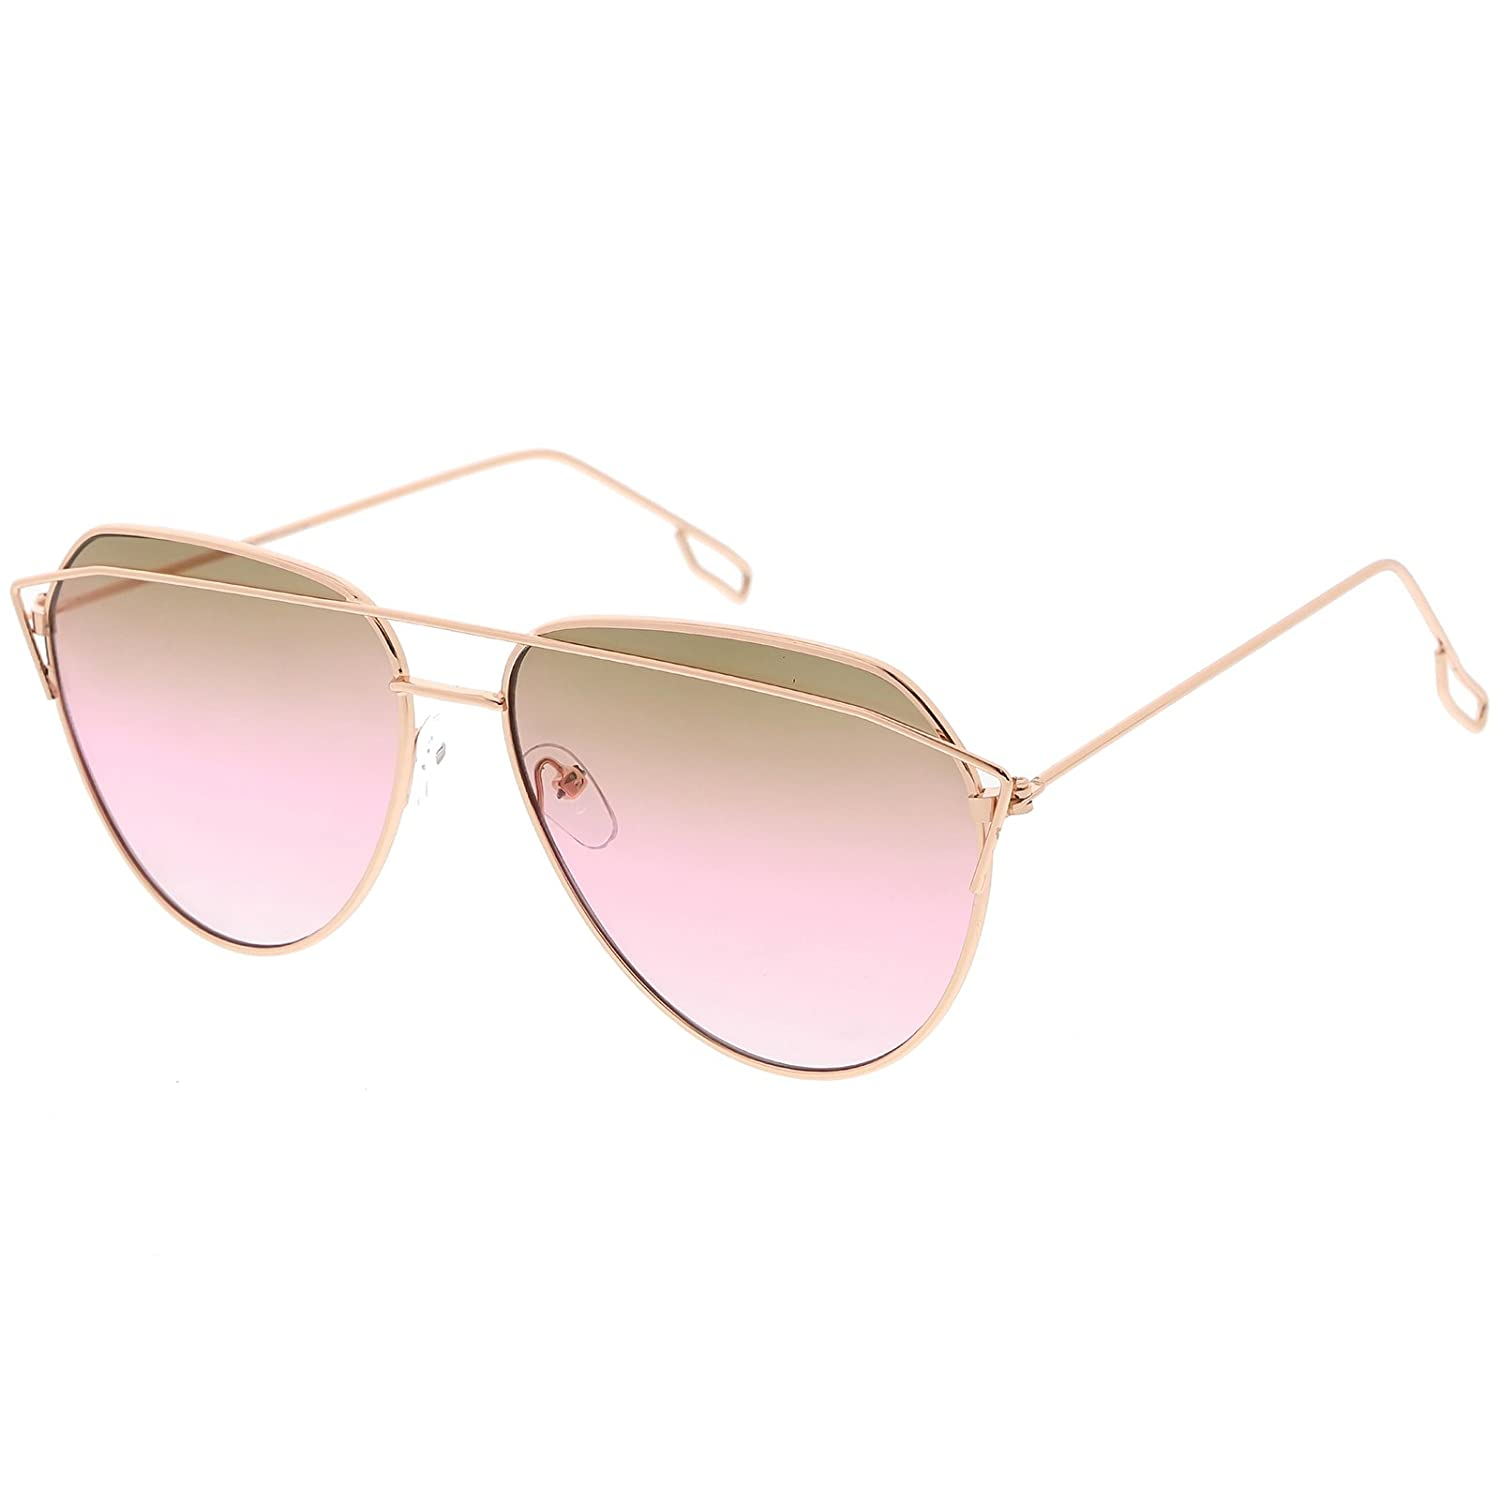 4b9c4e4699 Amazon.com  sunglassLA - Modern Aviator Sunglasses Metal Crossbar Slim Arms  Color Gradient Flat Lens 58mm (Rose Gold Smoke Pink)  Clothing